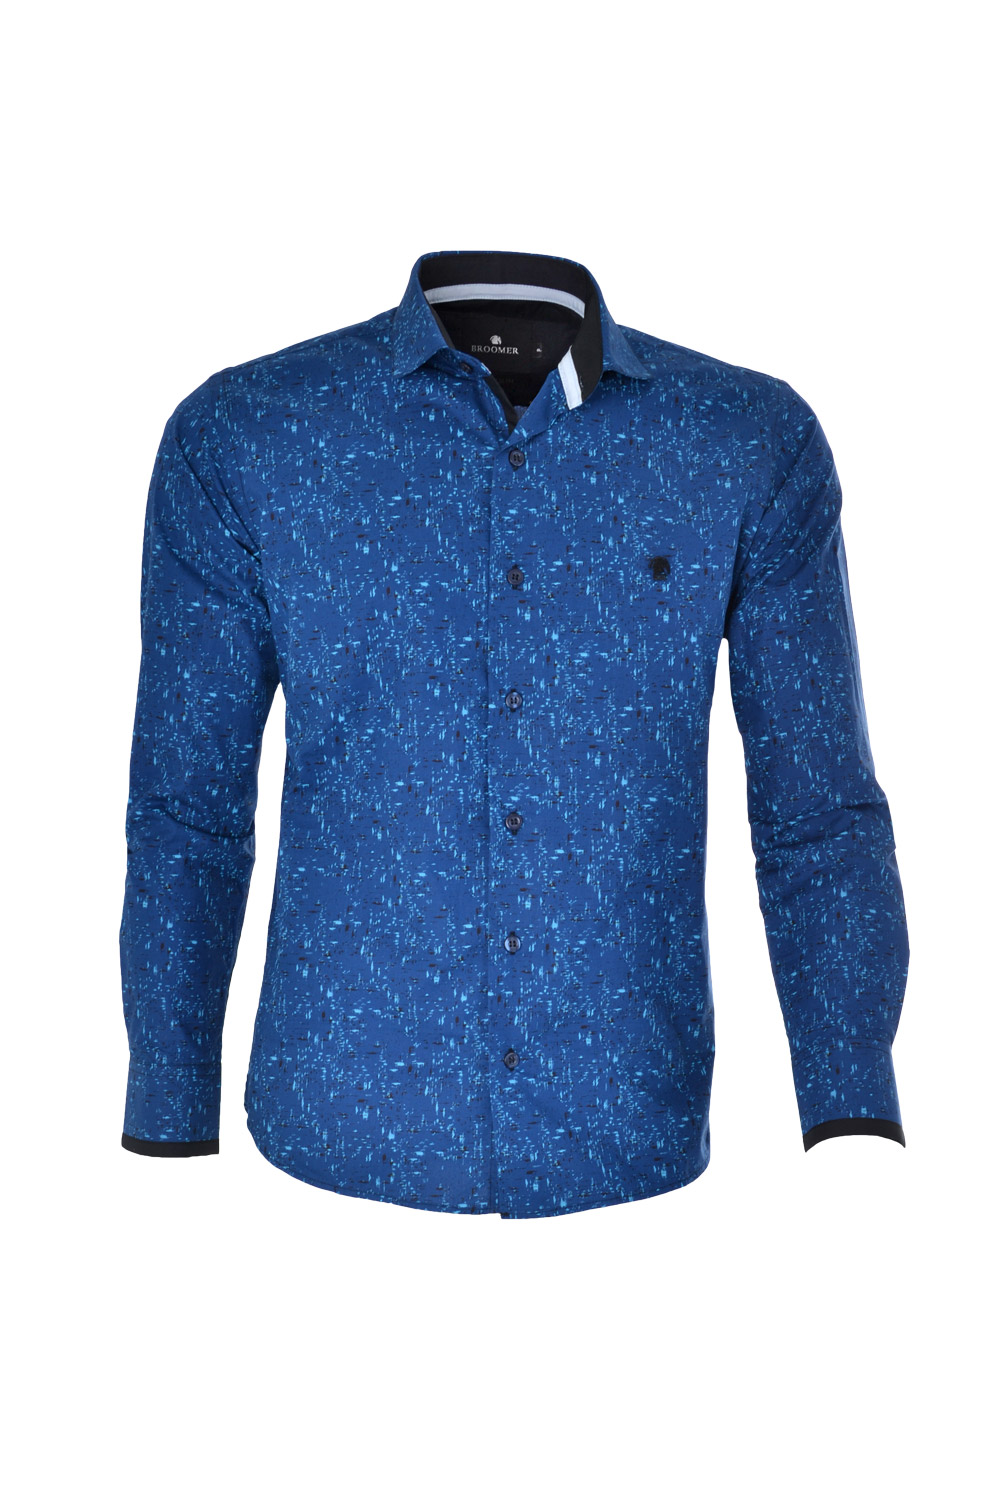 CAMISA ML FASHION SUPER SLIM ALGODAO COMPOSE ESTAMPA AZUL ESCURO